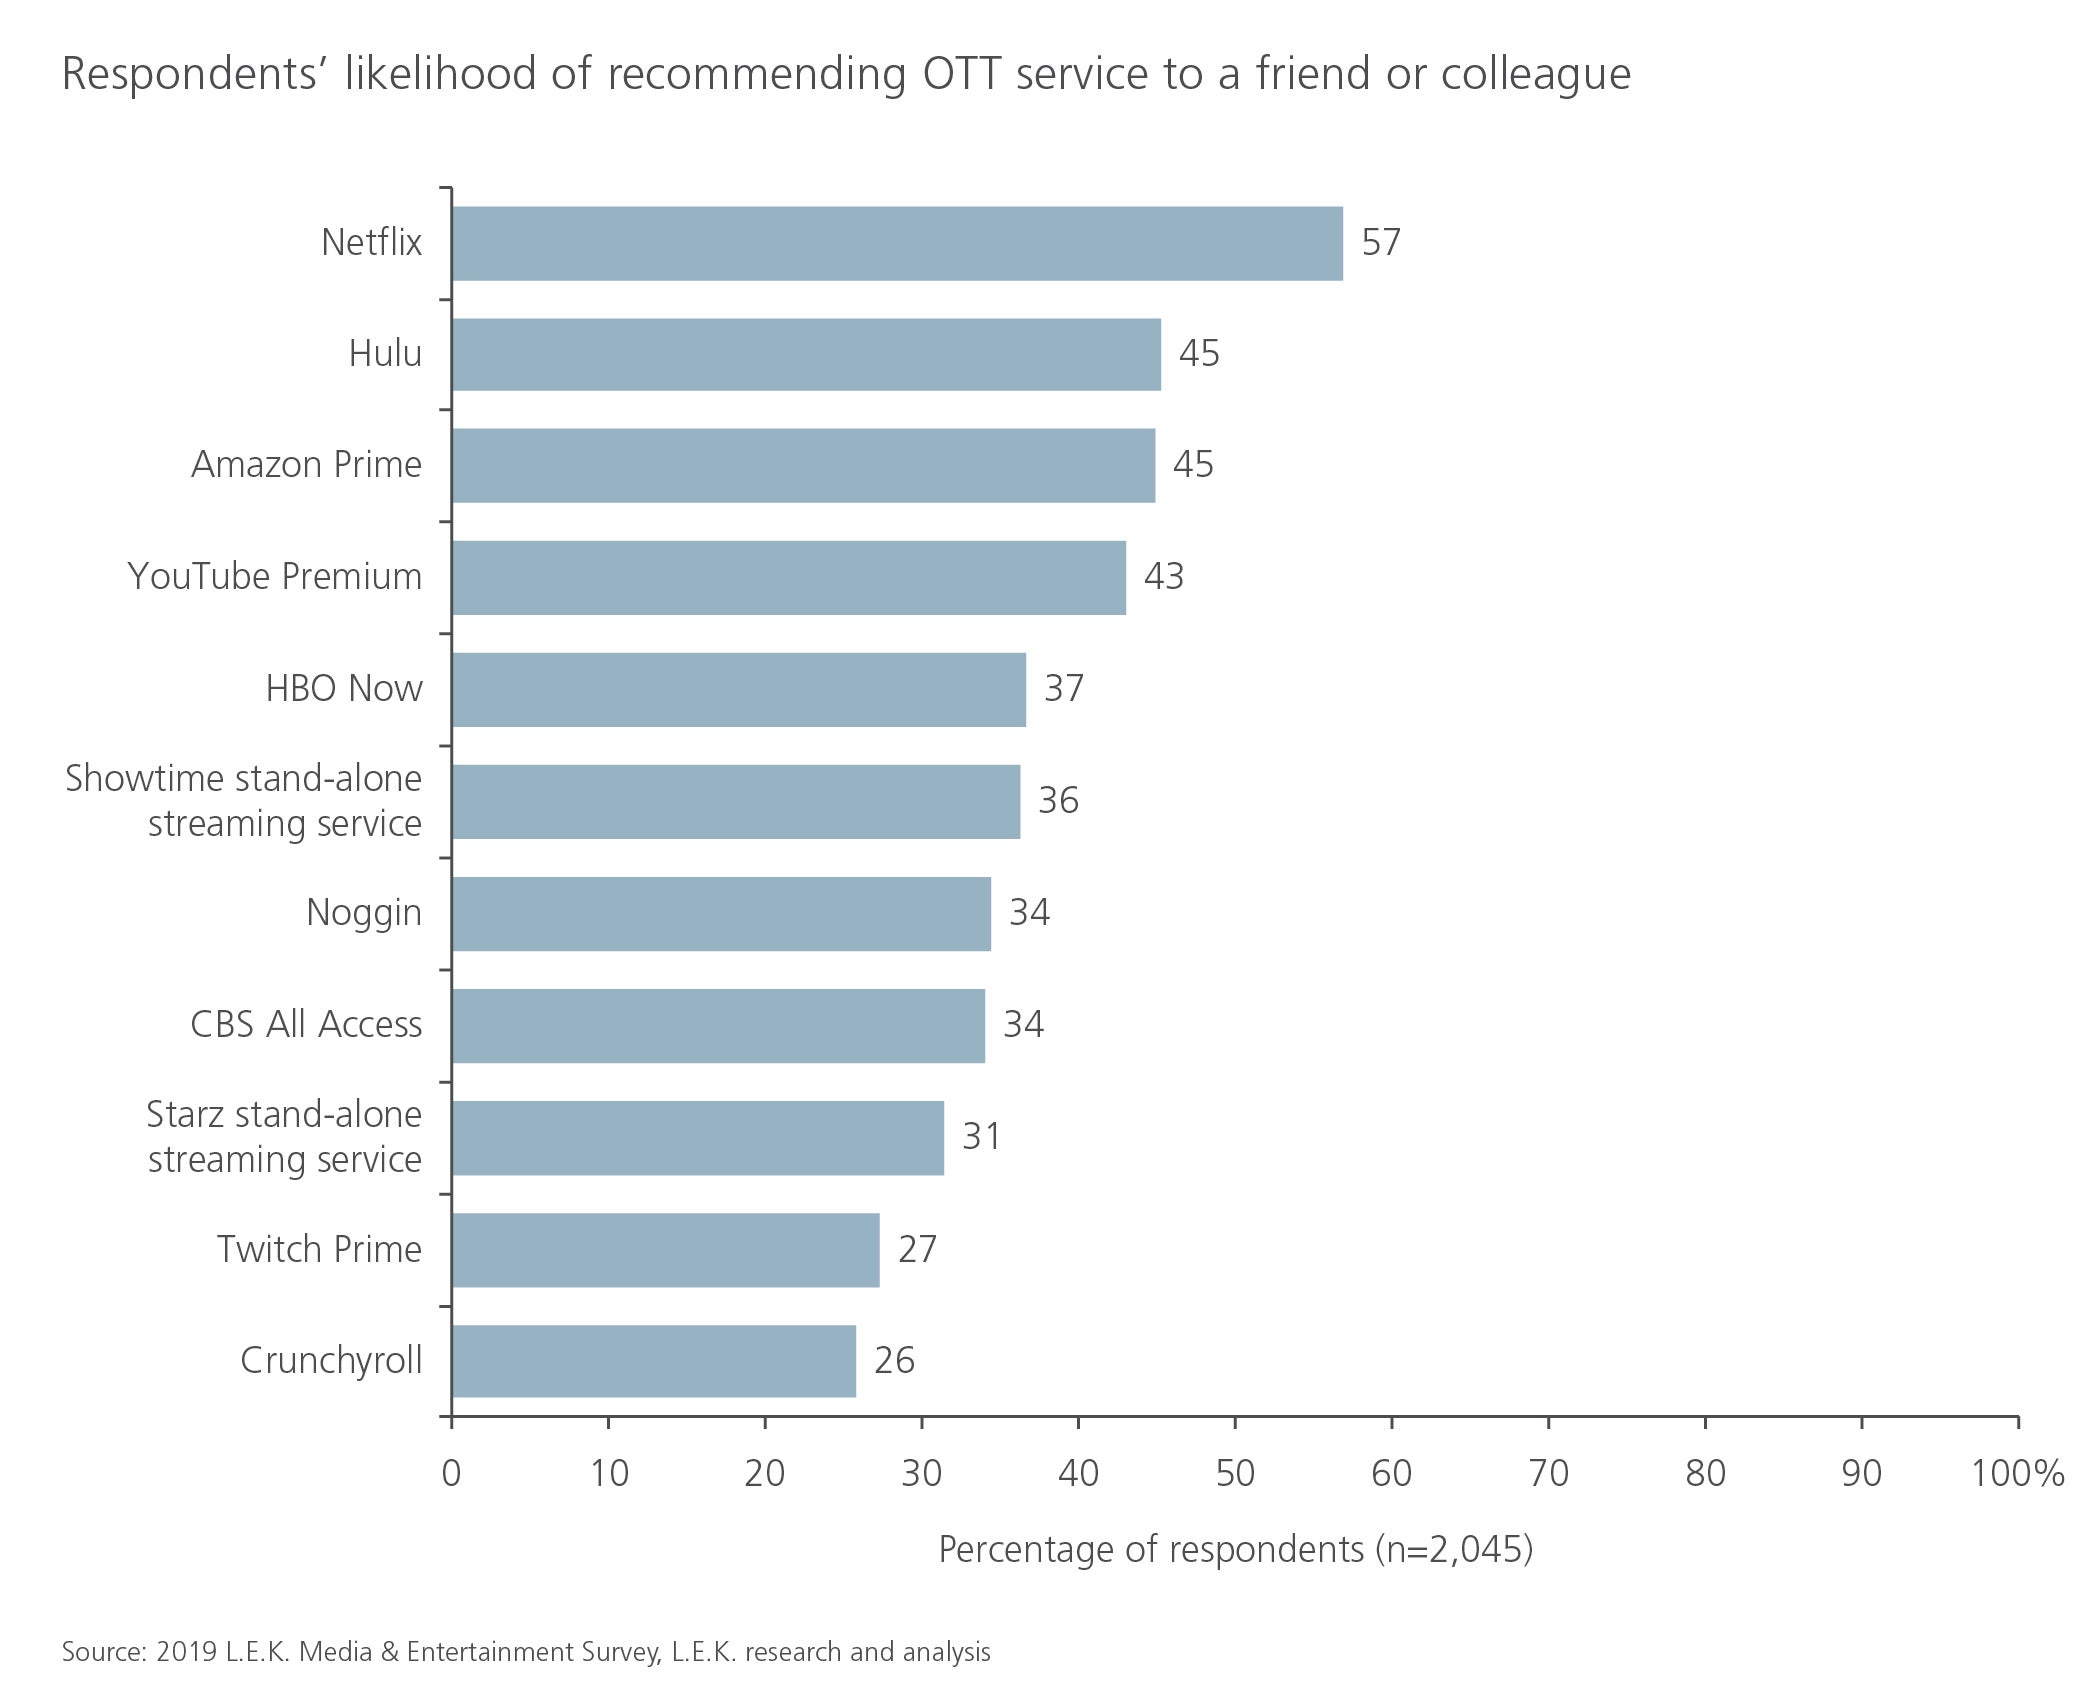 likelihood of recommending OTT service to friend or colleague